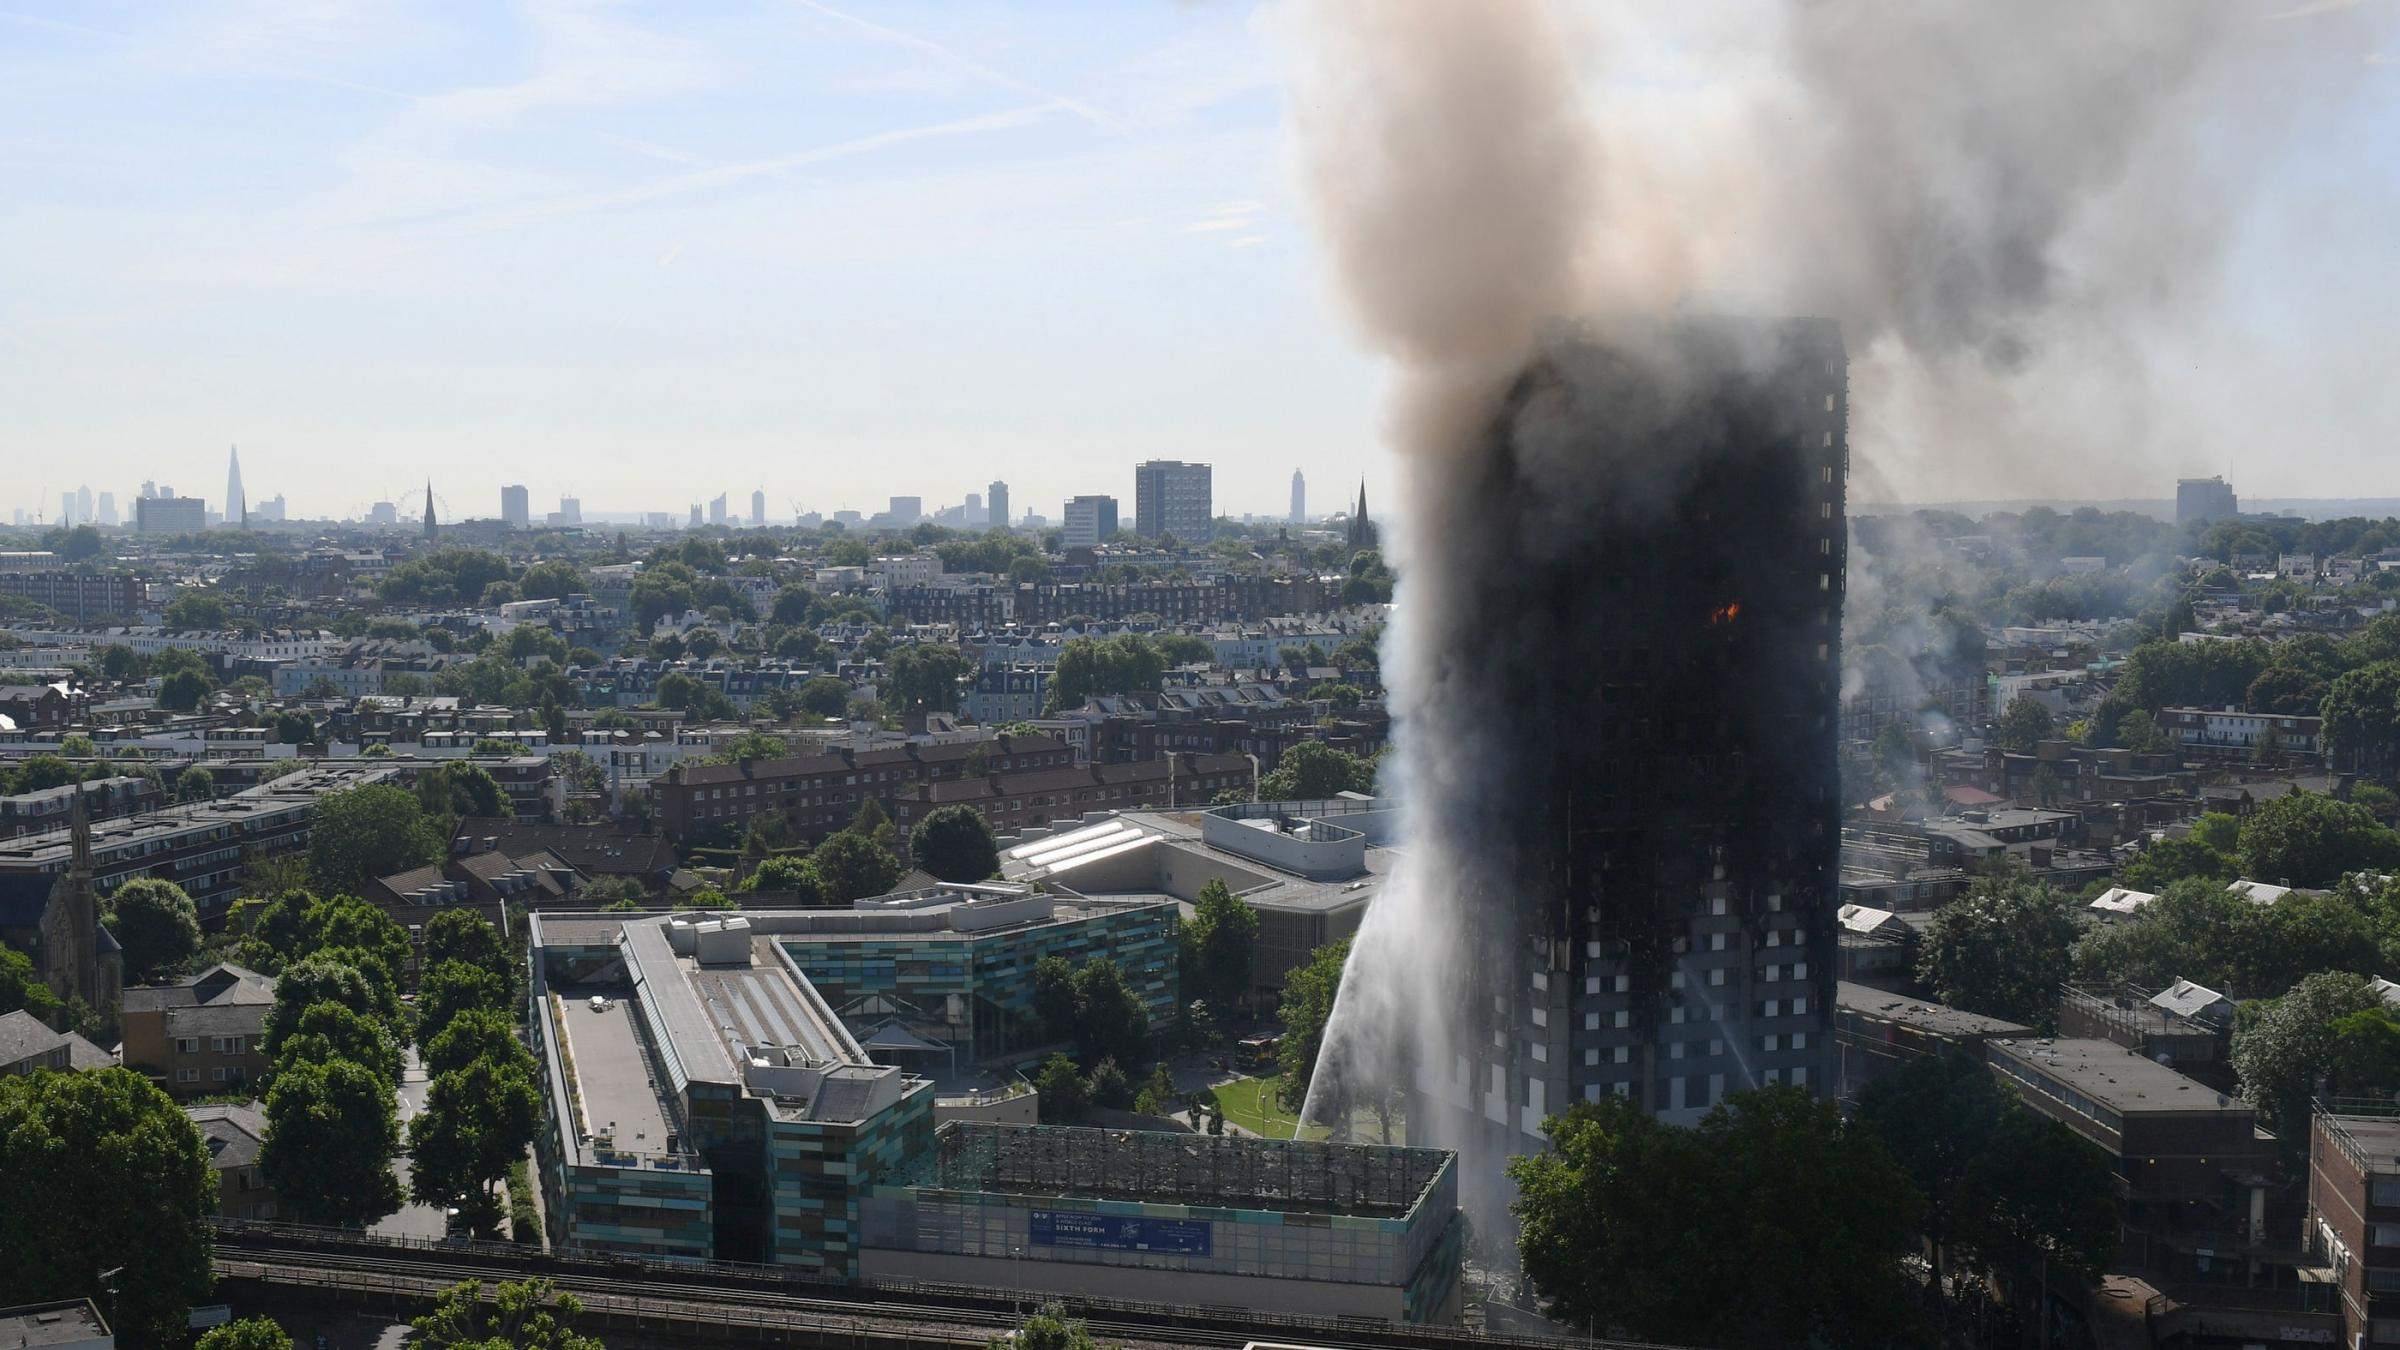 Grenfell Tower recovery efforts ongoing as death toll reaches 30